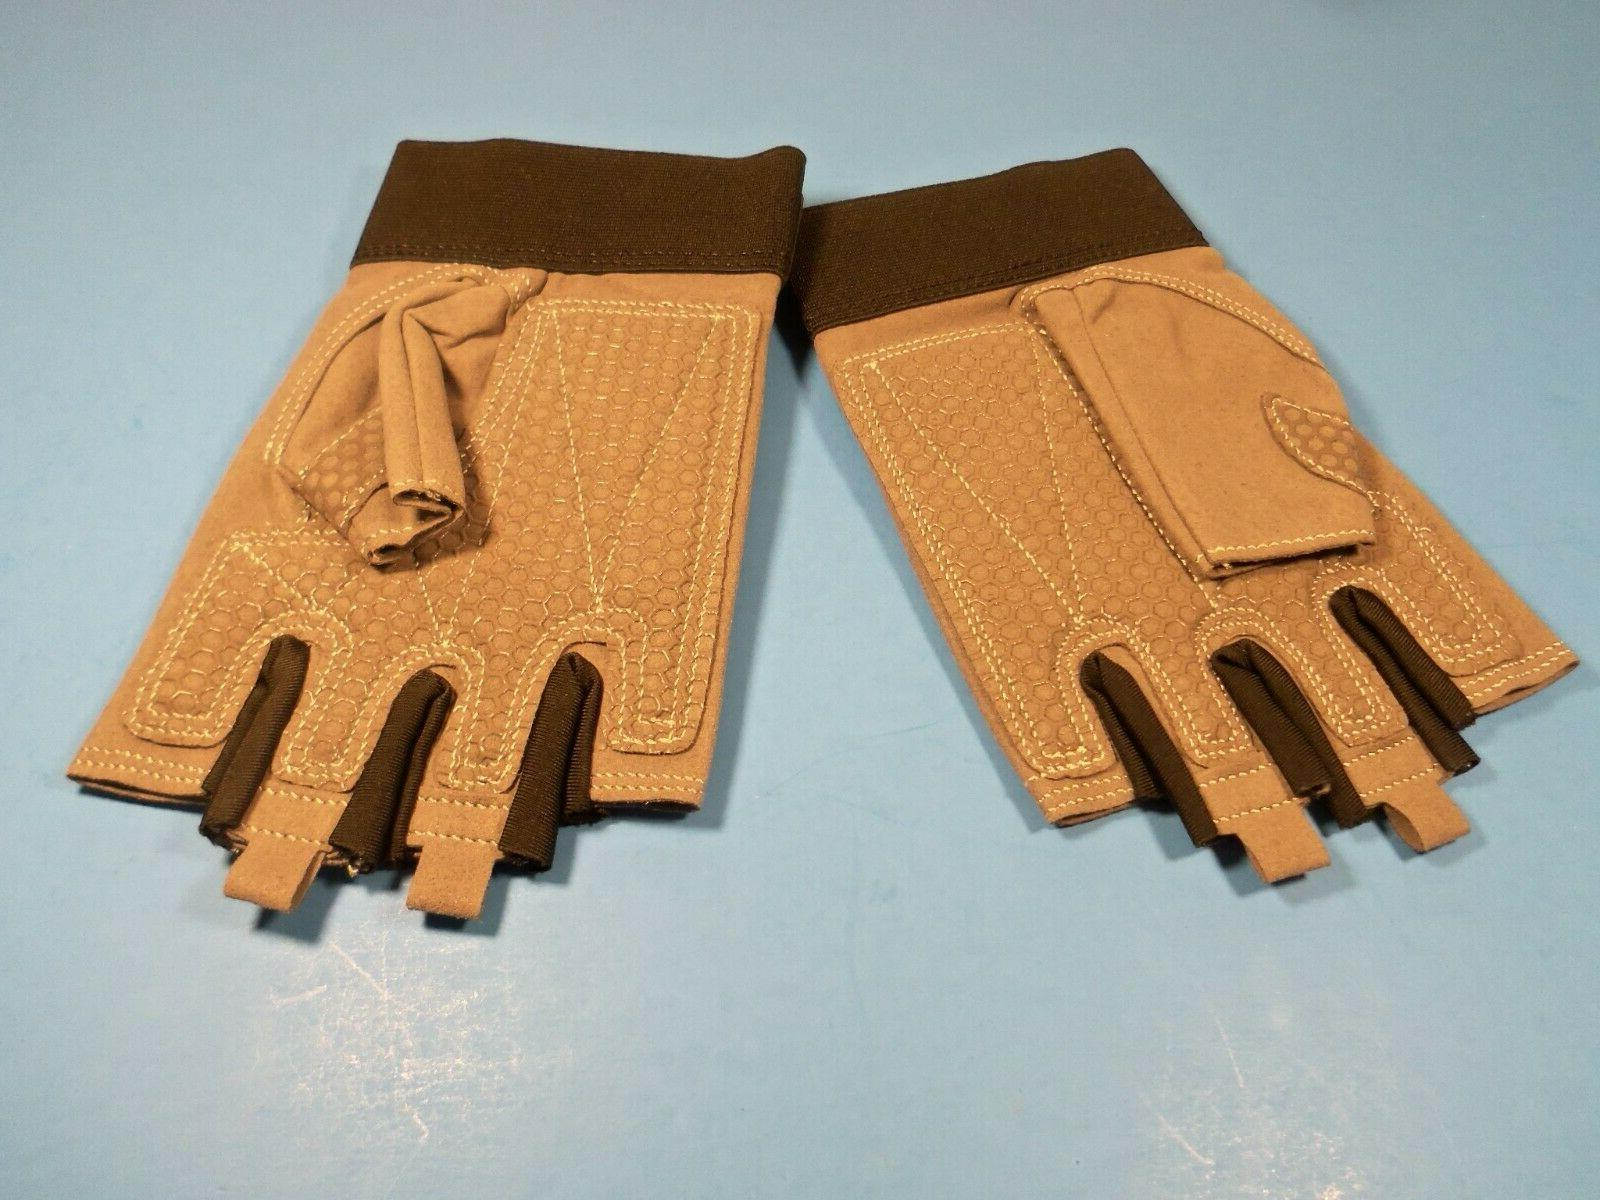 Trideer Workout Gloves Protection & for WeightlIfting.